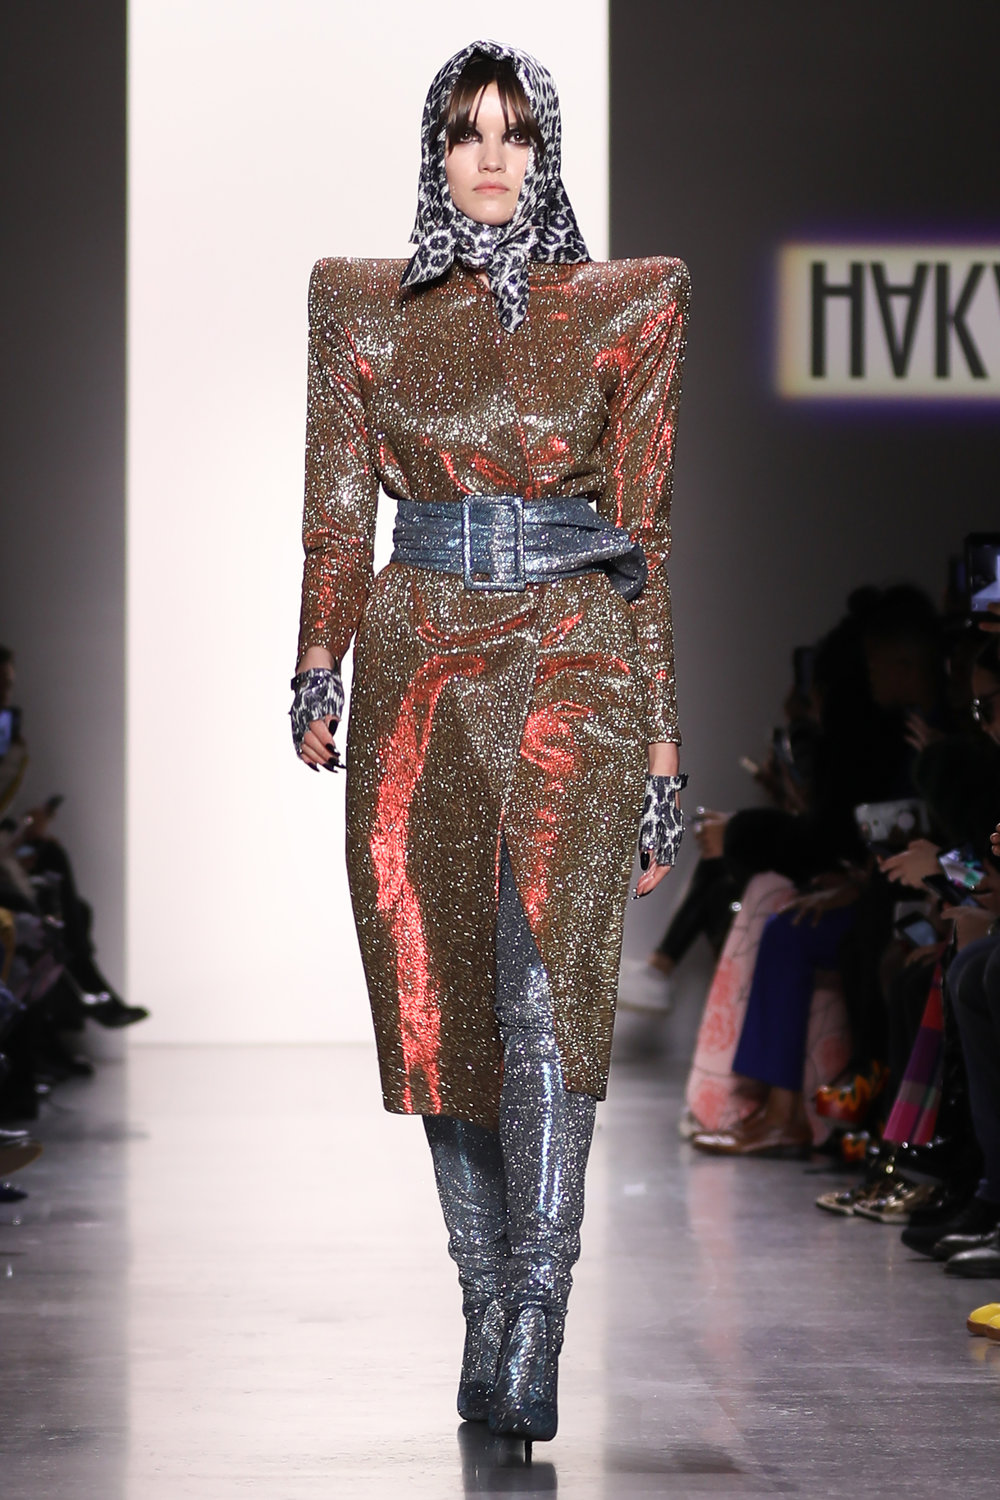 Hakan-Akkaya-NYFW-Fall-2019-22-300dpi-Photo-Credit-Elvia-Gobbo.jpg